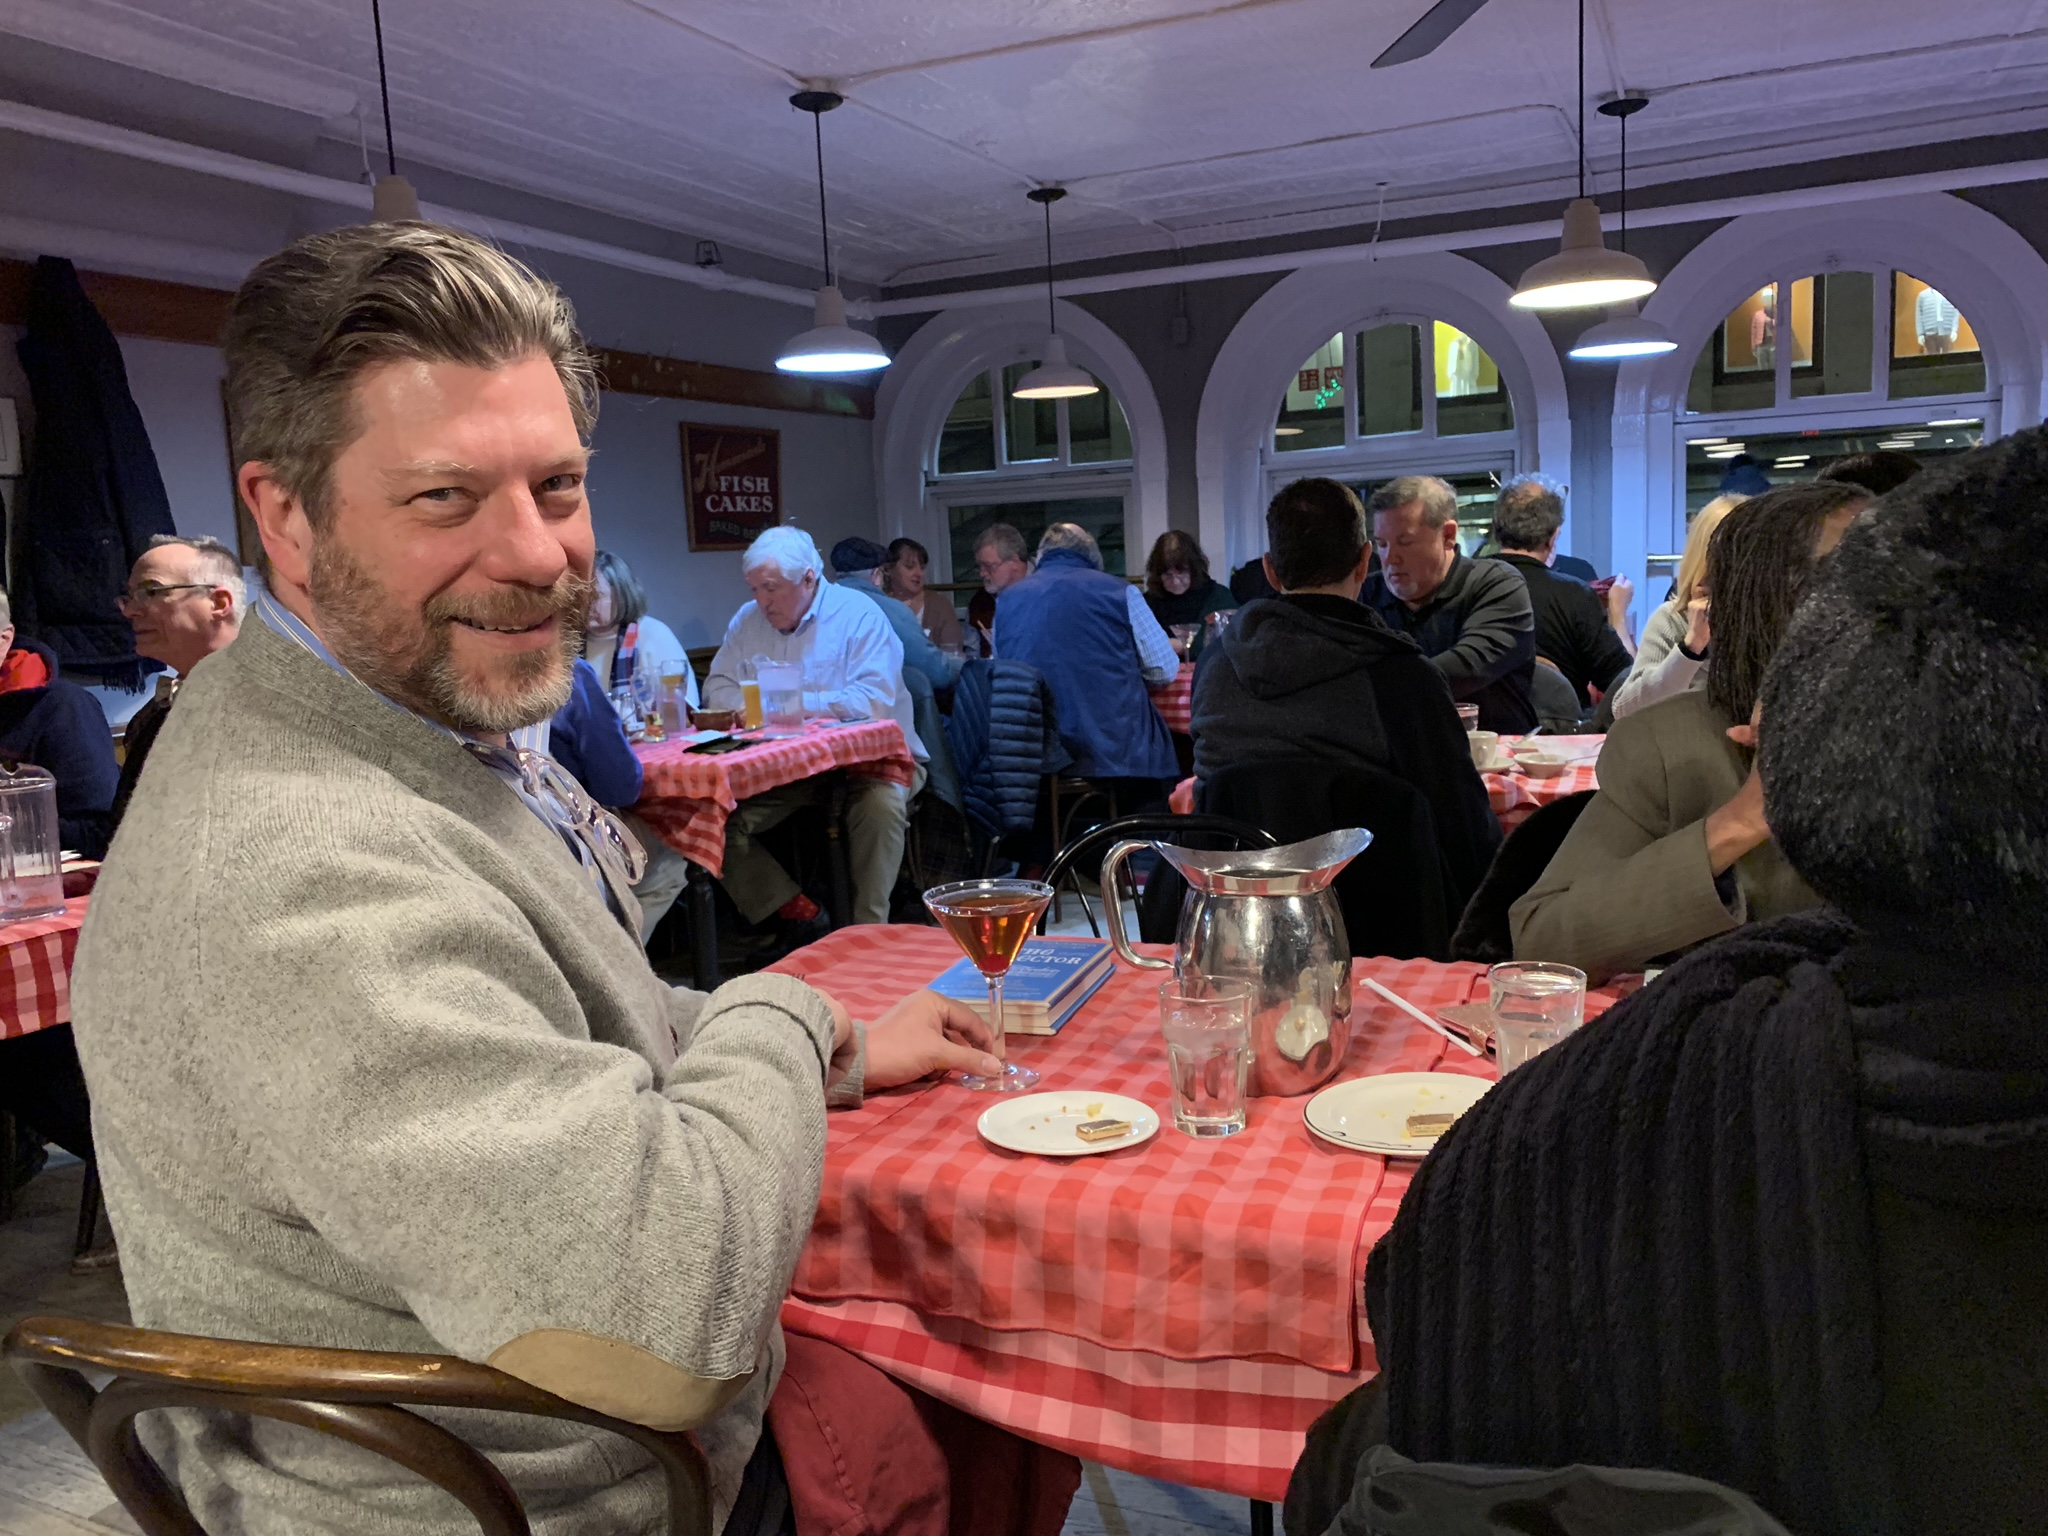 Etiquetteer enjoying one last dinner at Durgin-Park.